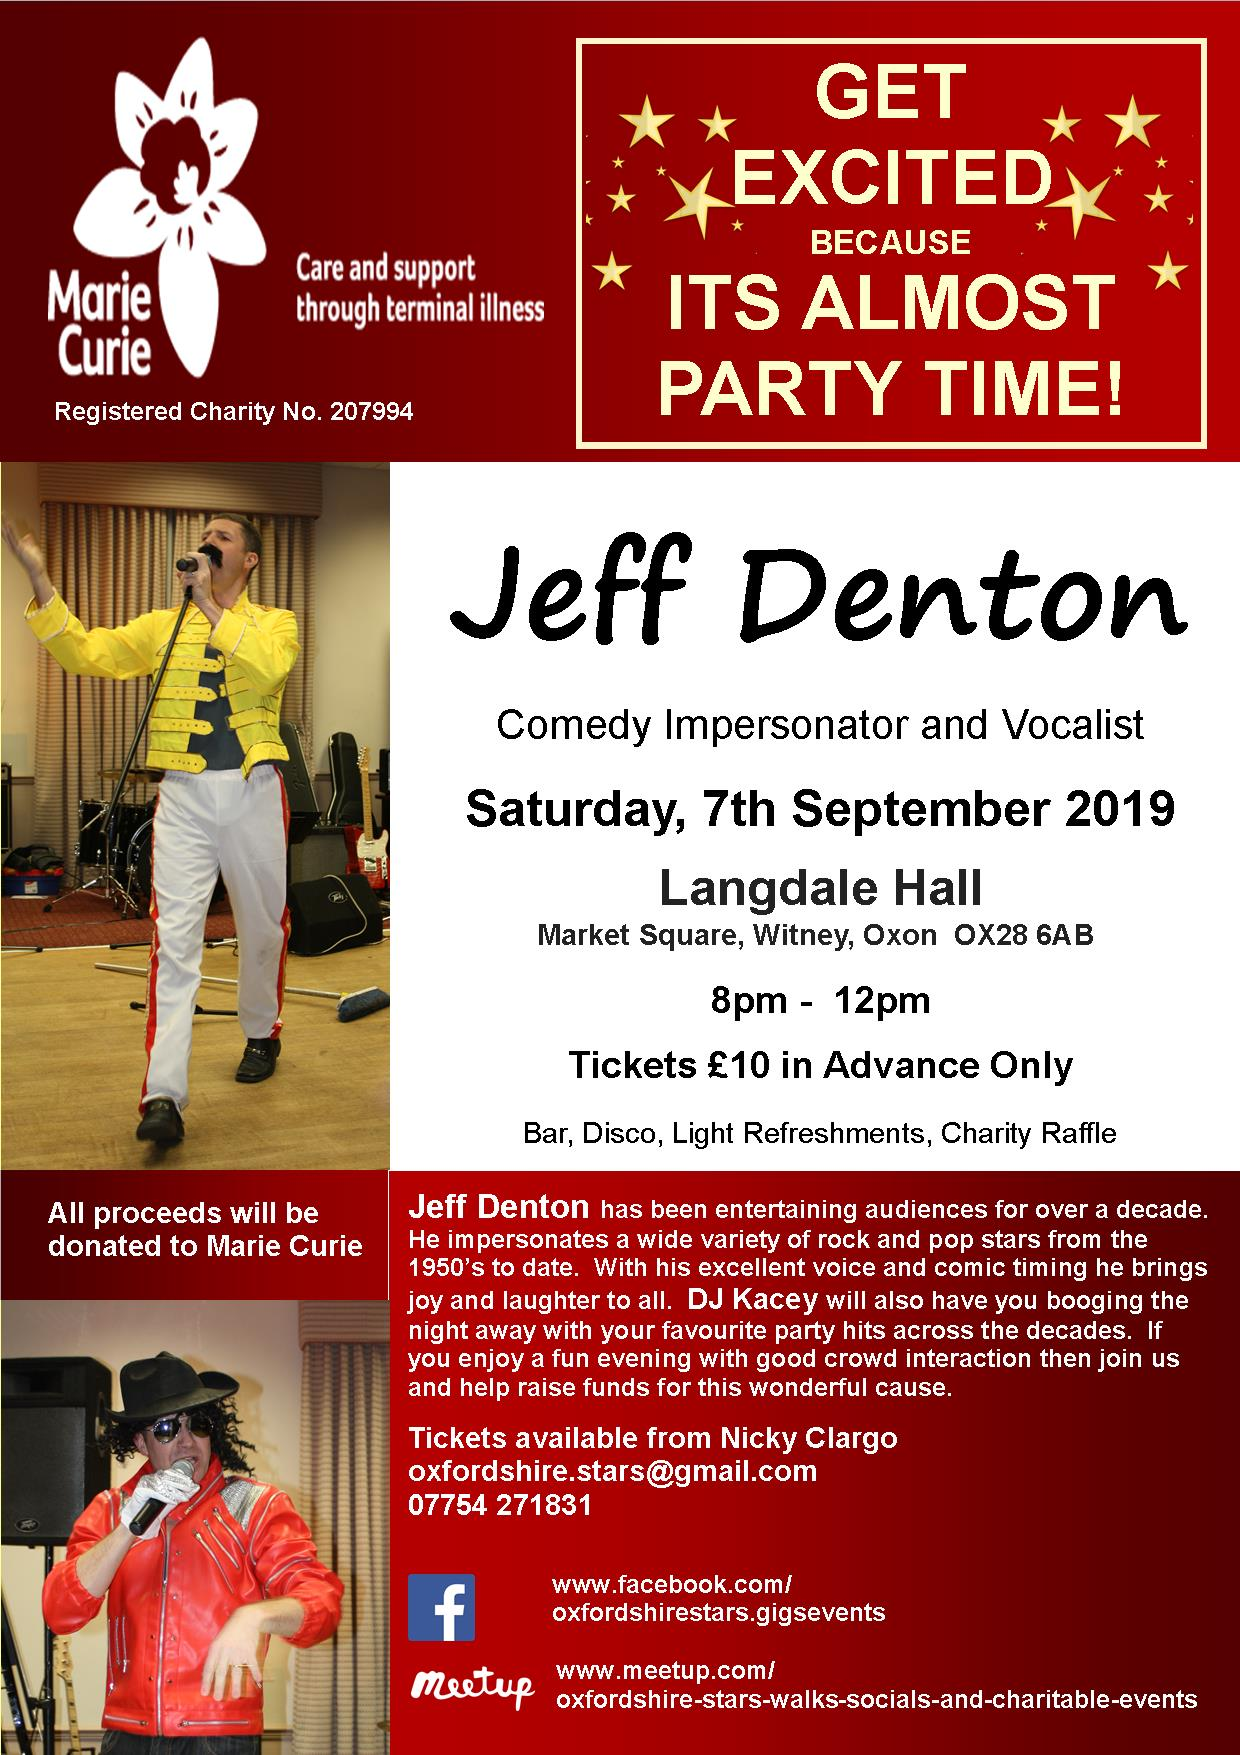 Jeff Denton, Comedy Impersonator and Vocalist in aid of Marie Curie